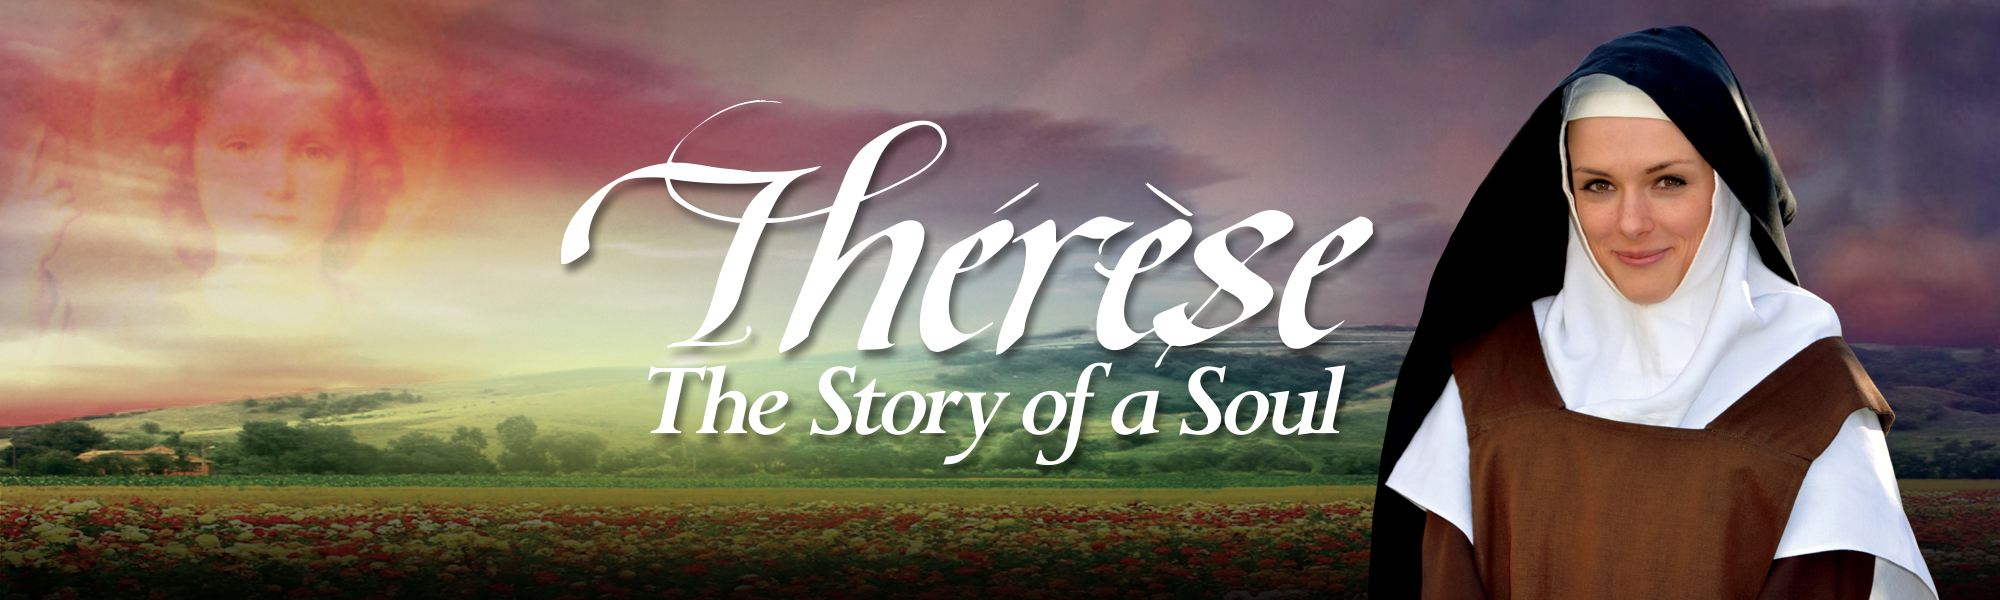 The Story | Therese: The Story of a Soul